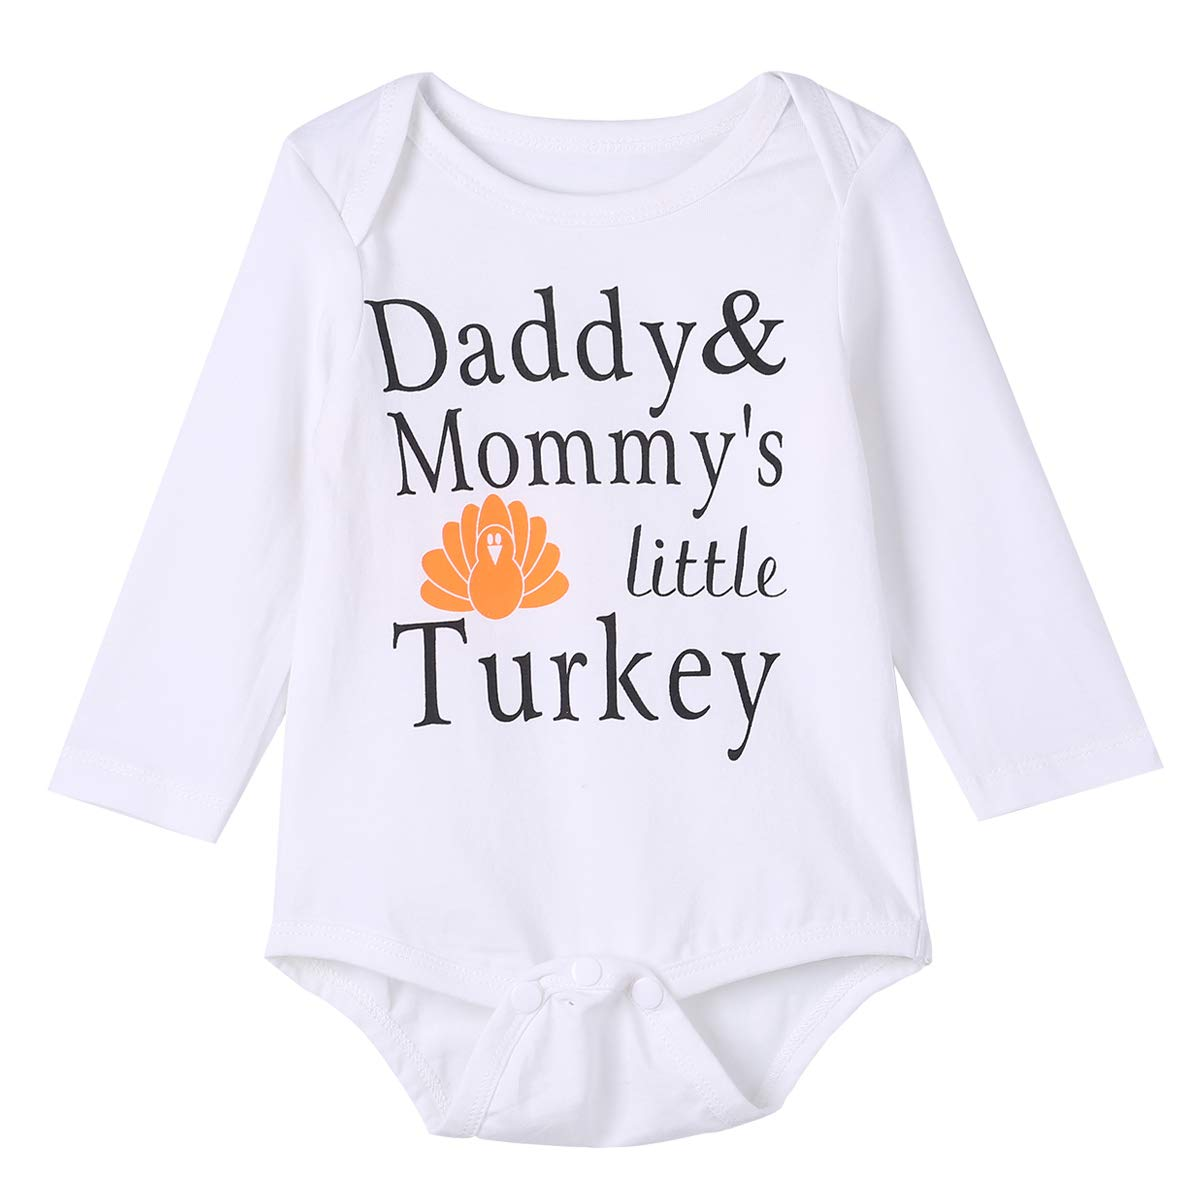 9b815b67d Baby Boys Girls 4PCS Daddy Mommy's Little Turkey Cute Outfit Clothes ...